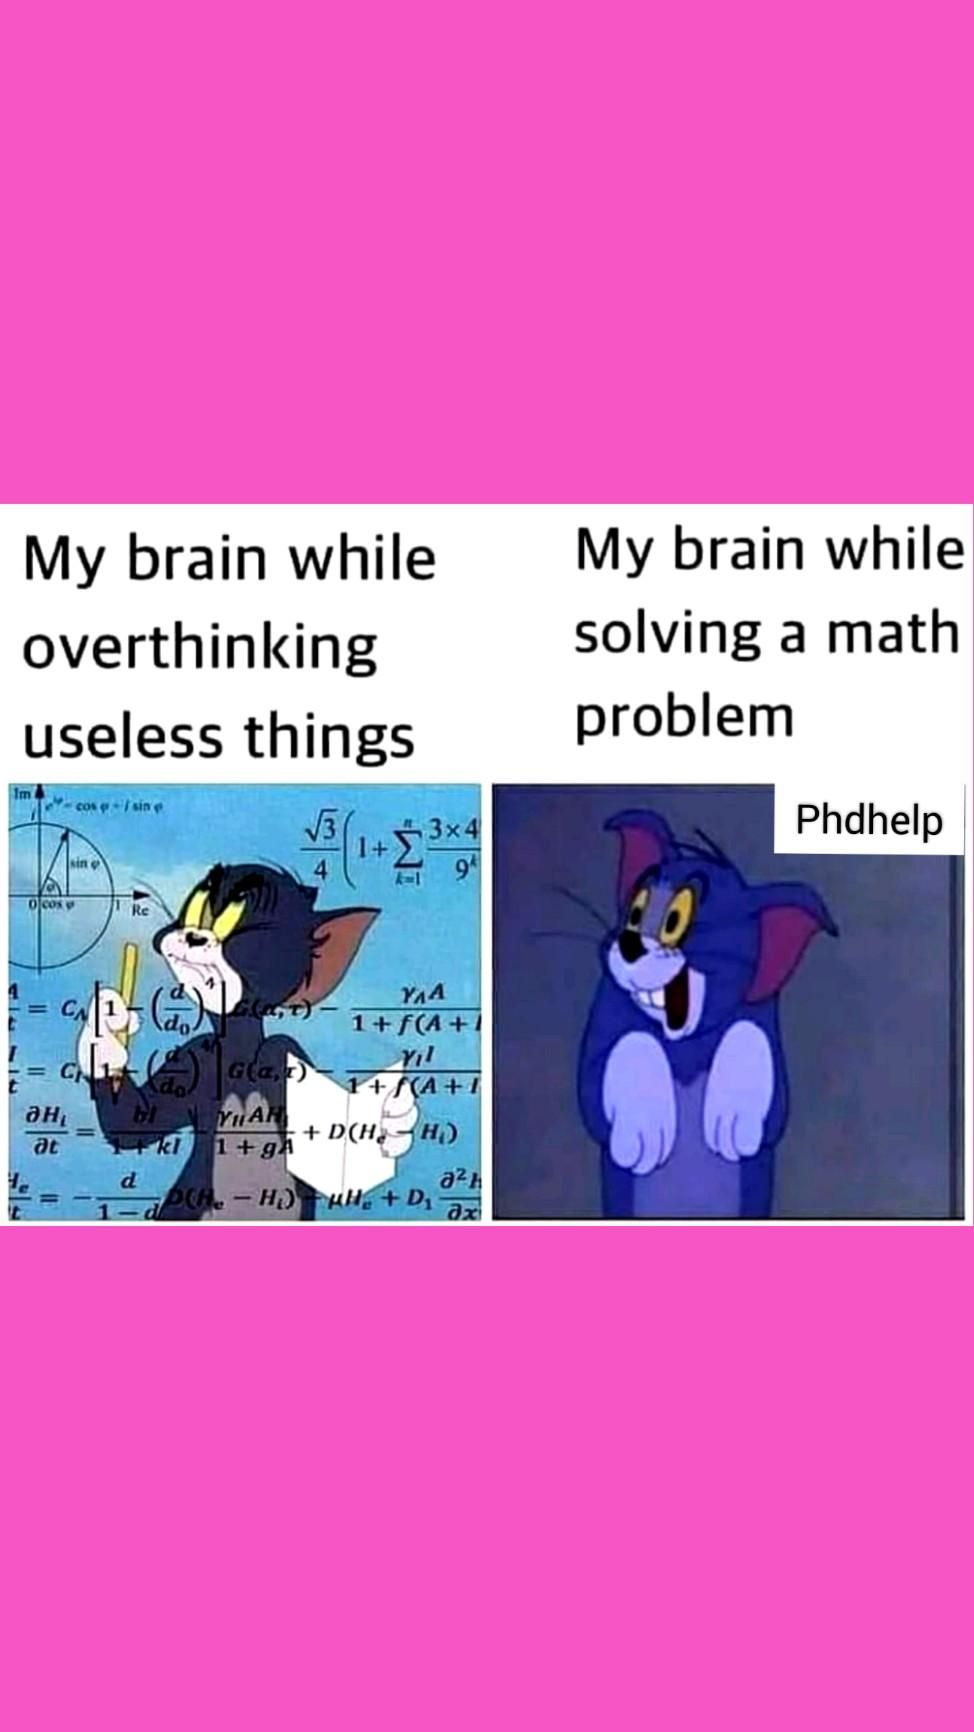 tom and Jerry overthinking